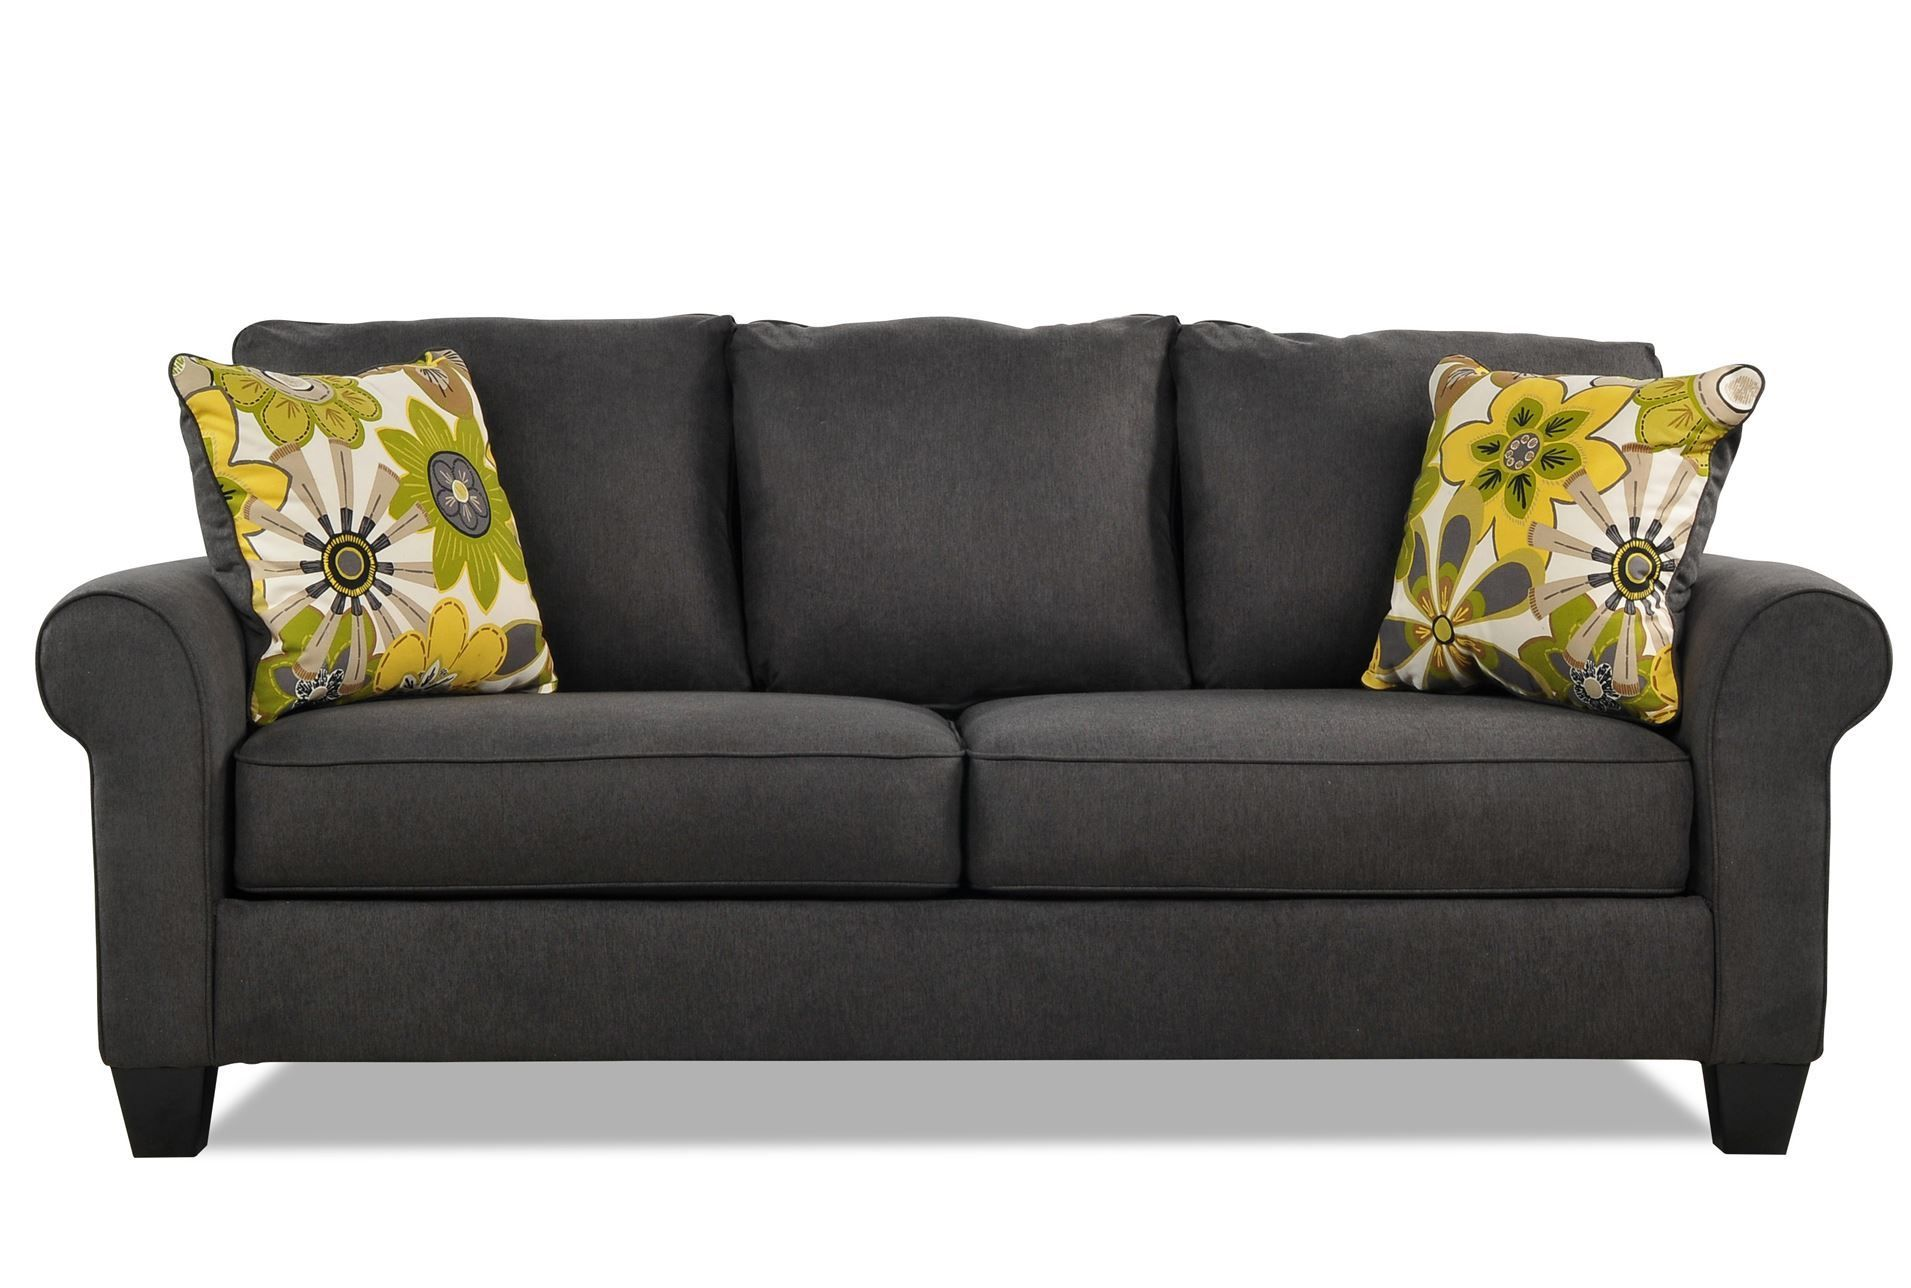 Nolana Charcoal Sofa I Think This Will Be My New Minus The Pillows Going To Add Own Pop Of Color